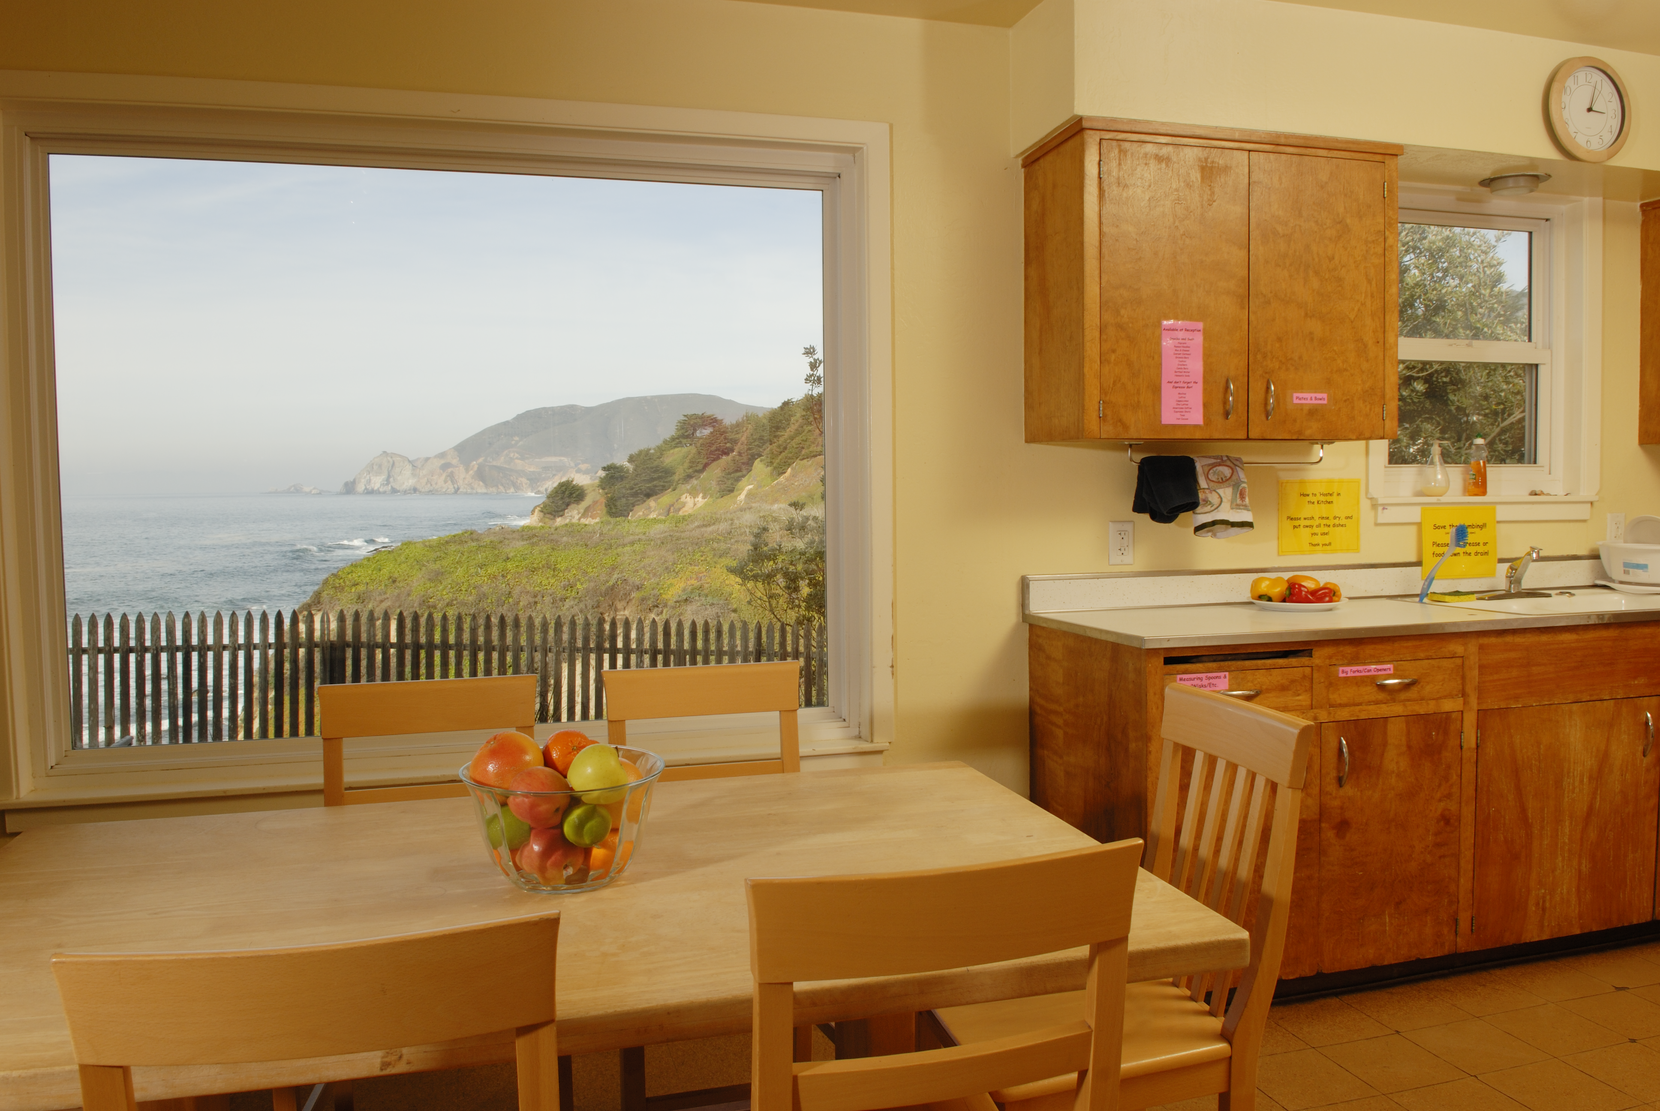 One of Point Montara's two kitchens offers views over the Pacific Ocean, where gray whales can sometimes be spotted spouting on their journey south.